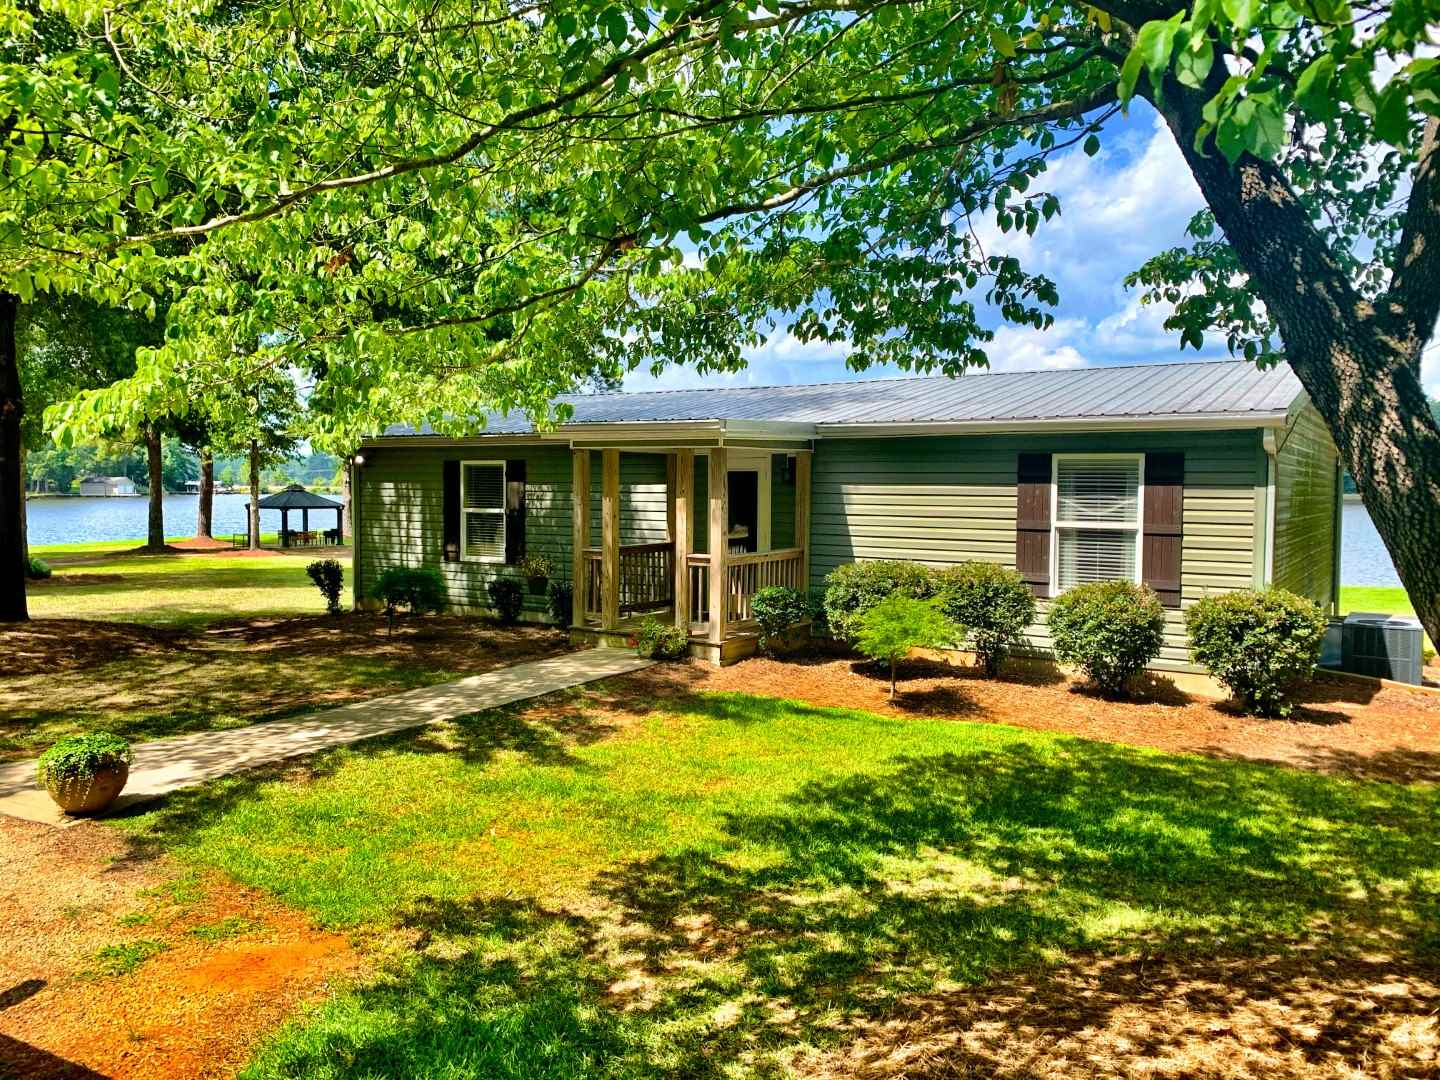 117 DAISY TRAIL, Lake Sinclair, Georgia